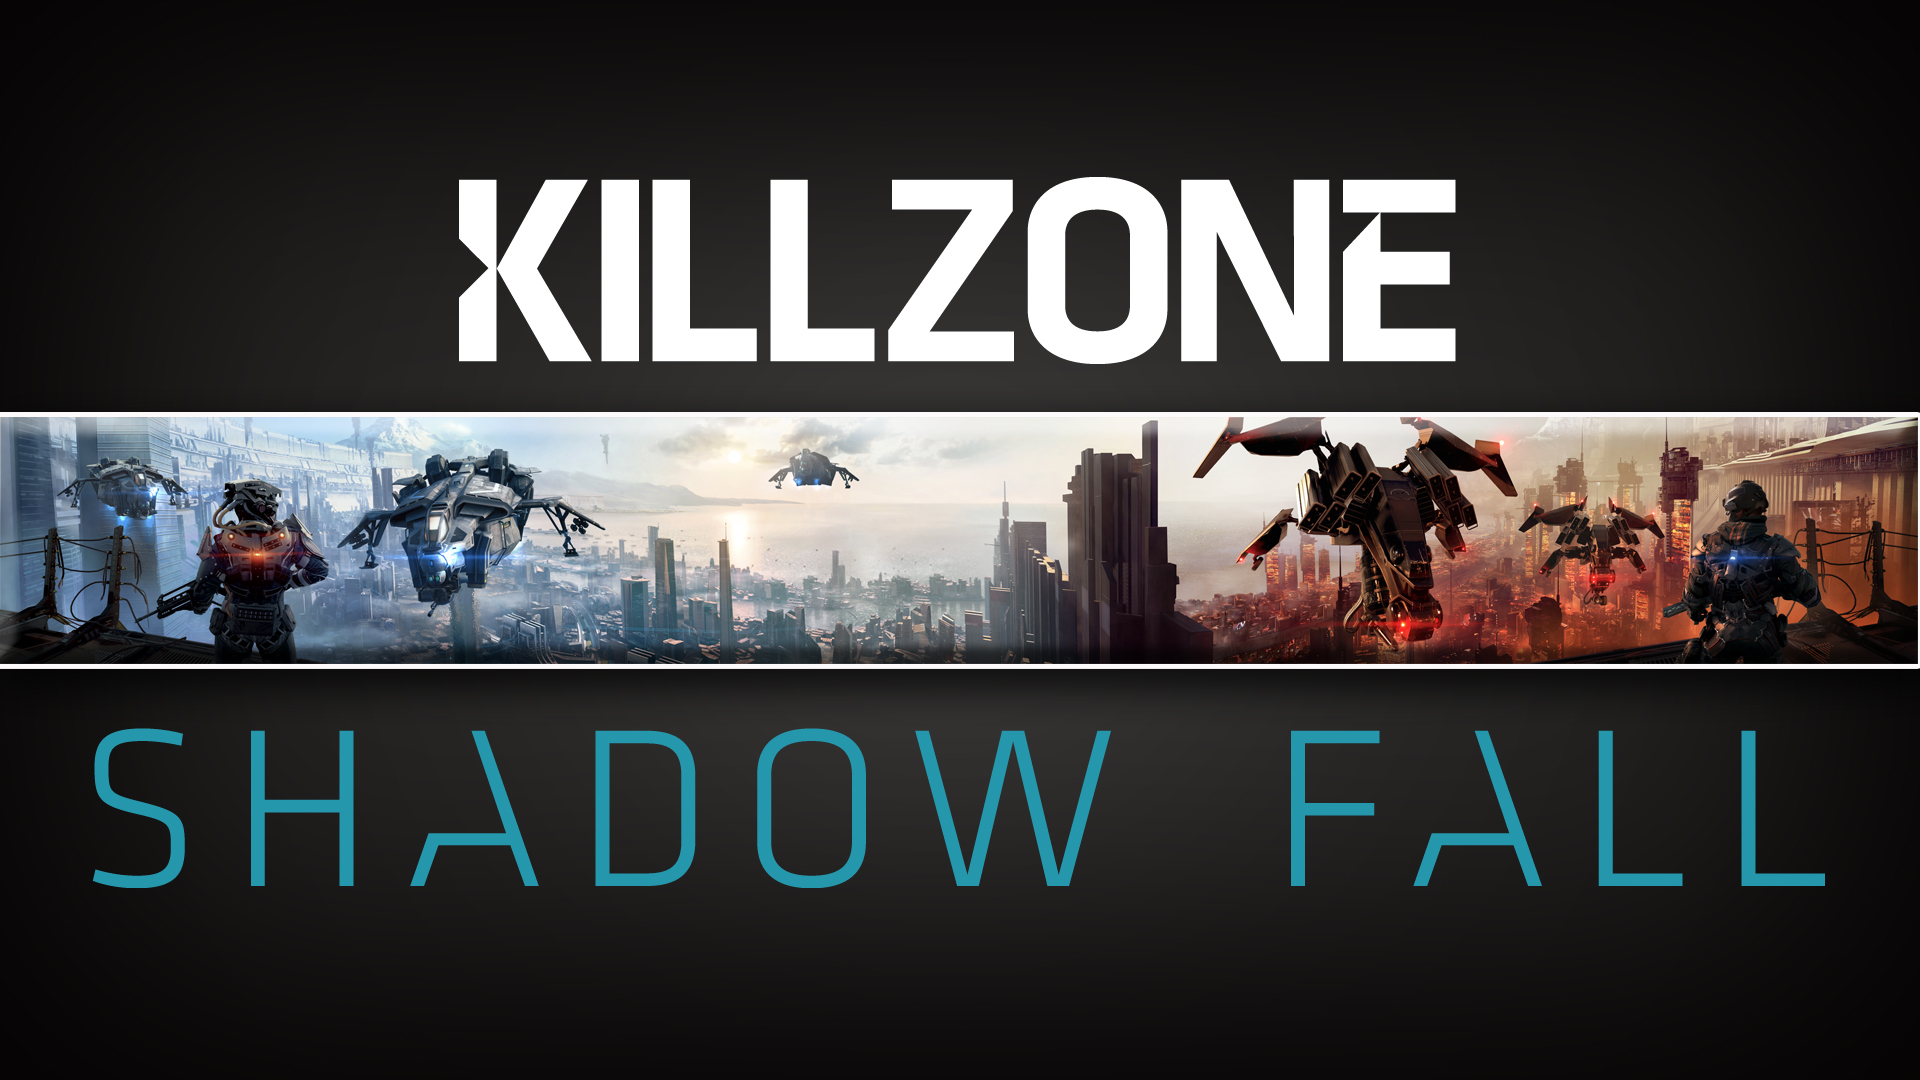 Killzone Shadow Fall Ps4 Wallpaper Ps4 New Sony Playstation 4 Includes Killzone Shadow